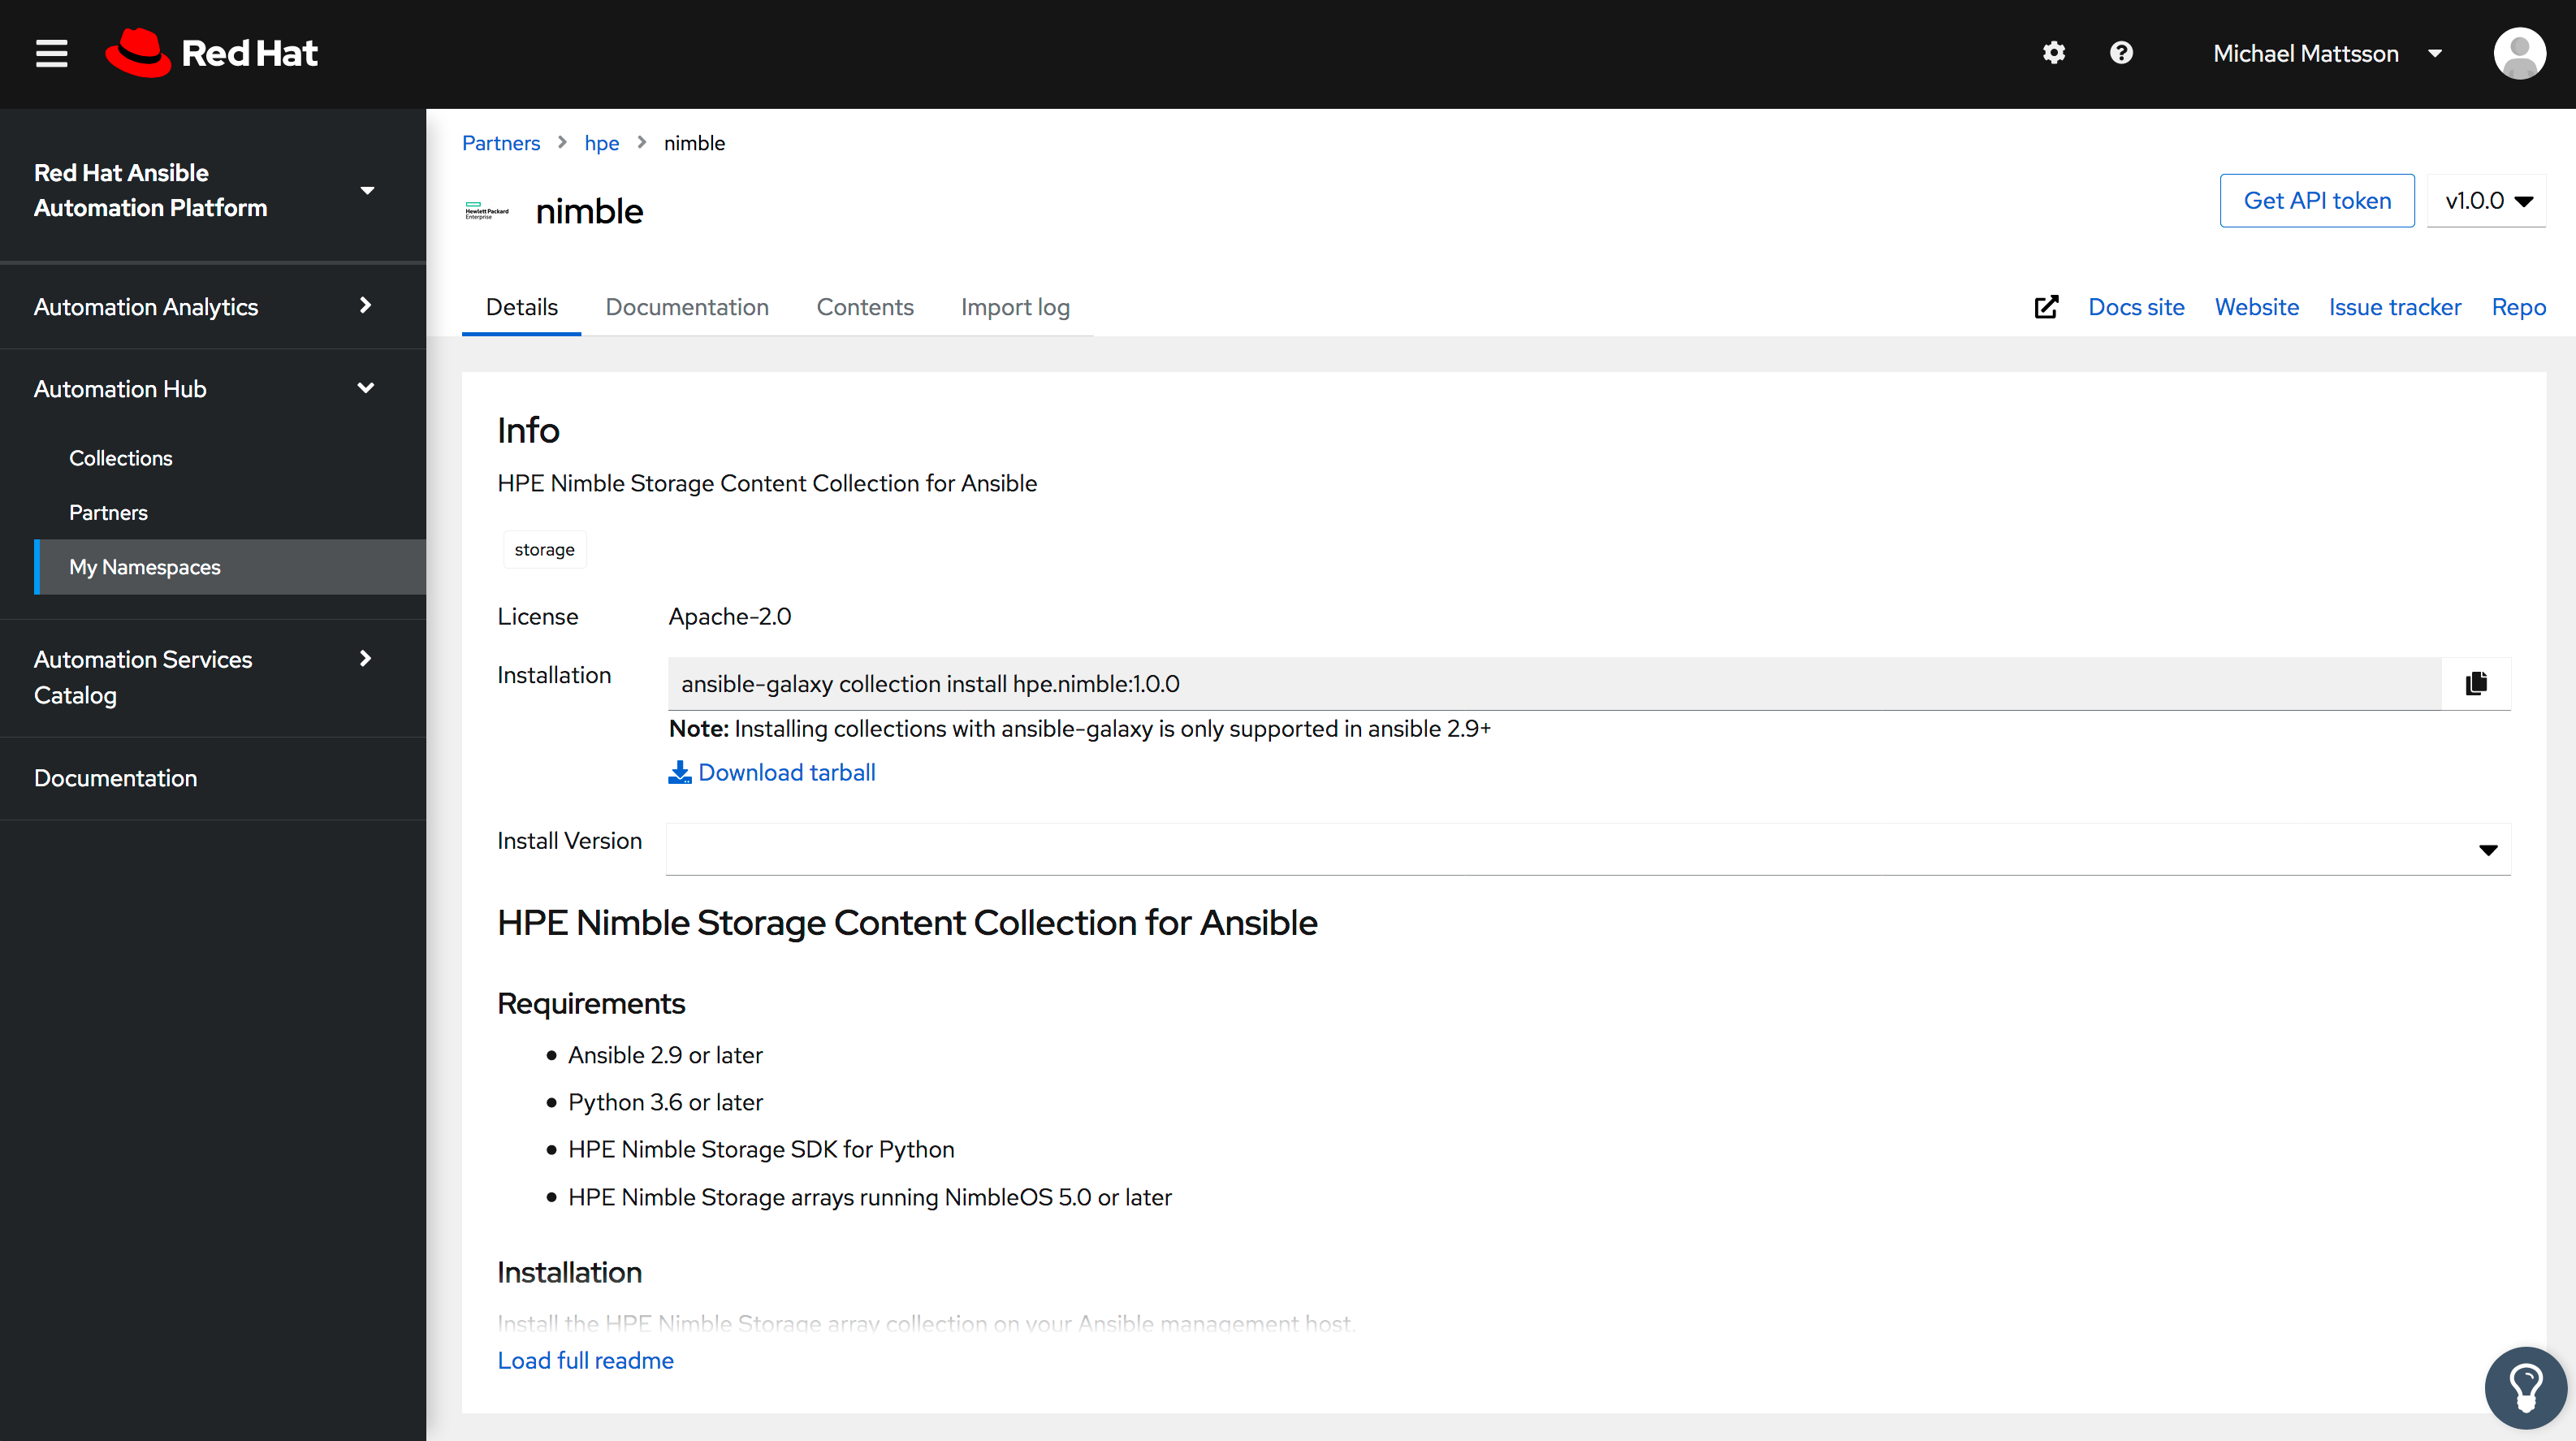 HPE Nimble Storage Content Collection for Ansbile